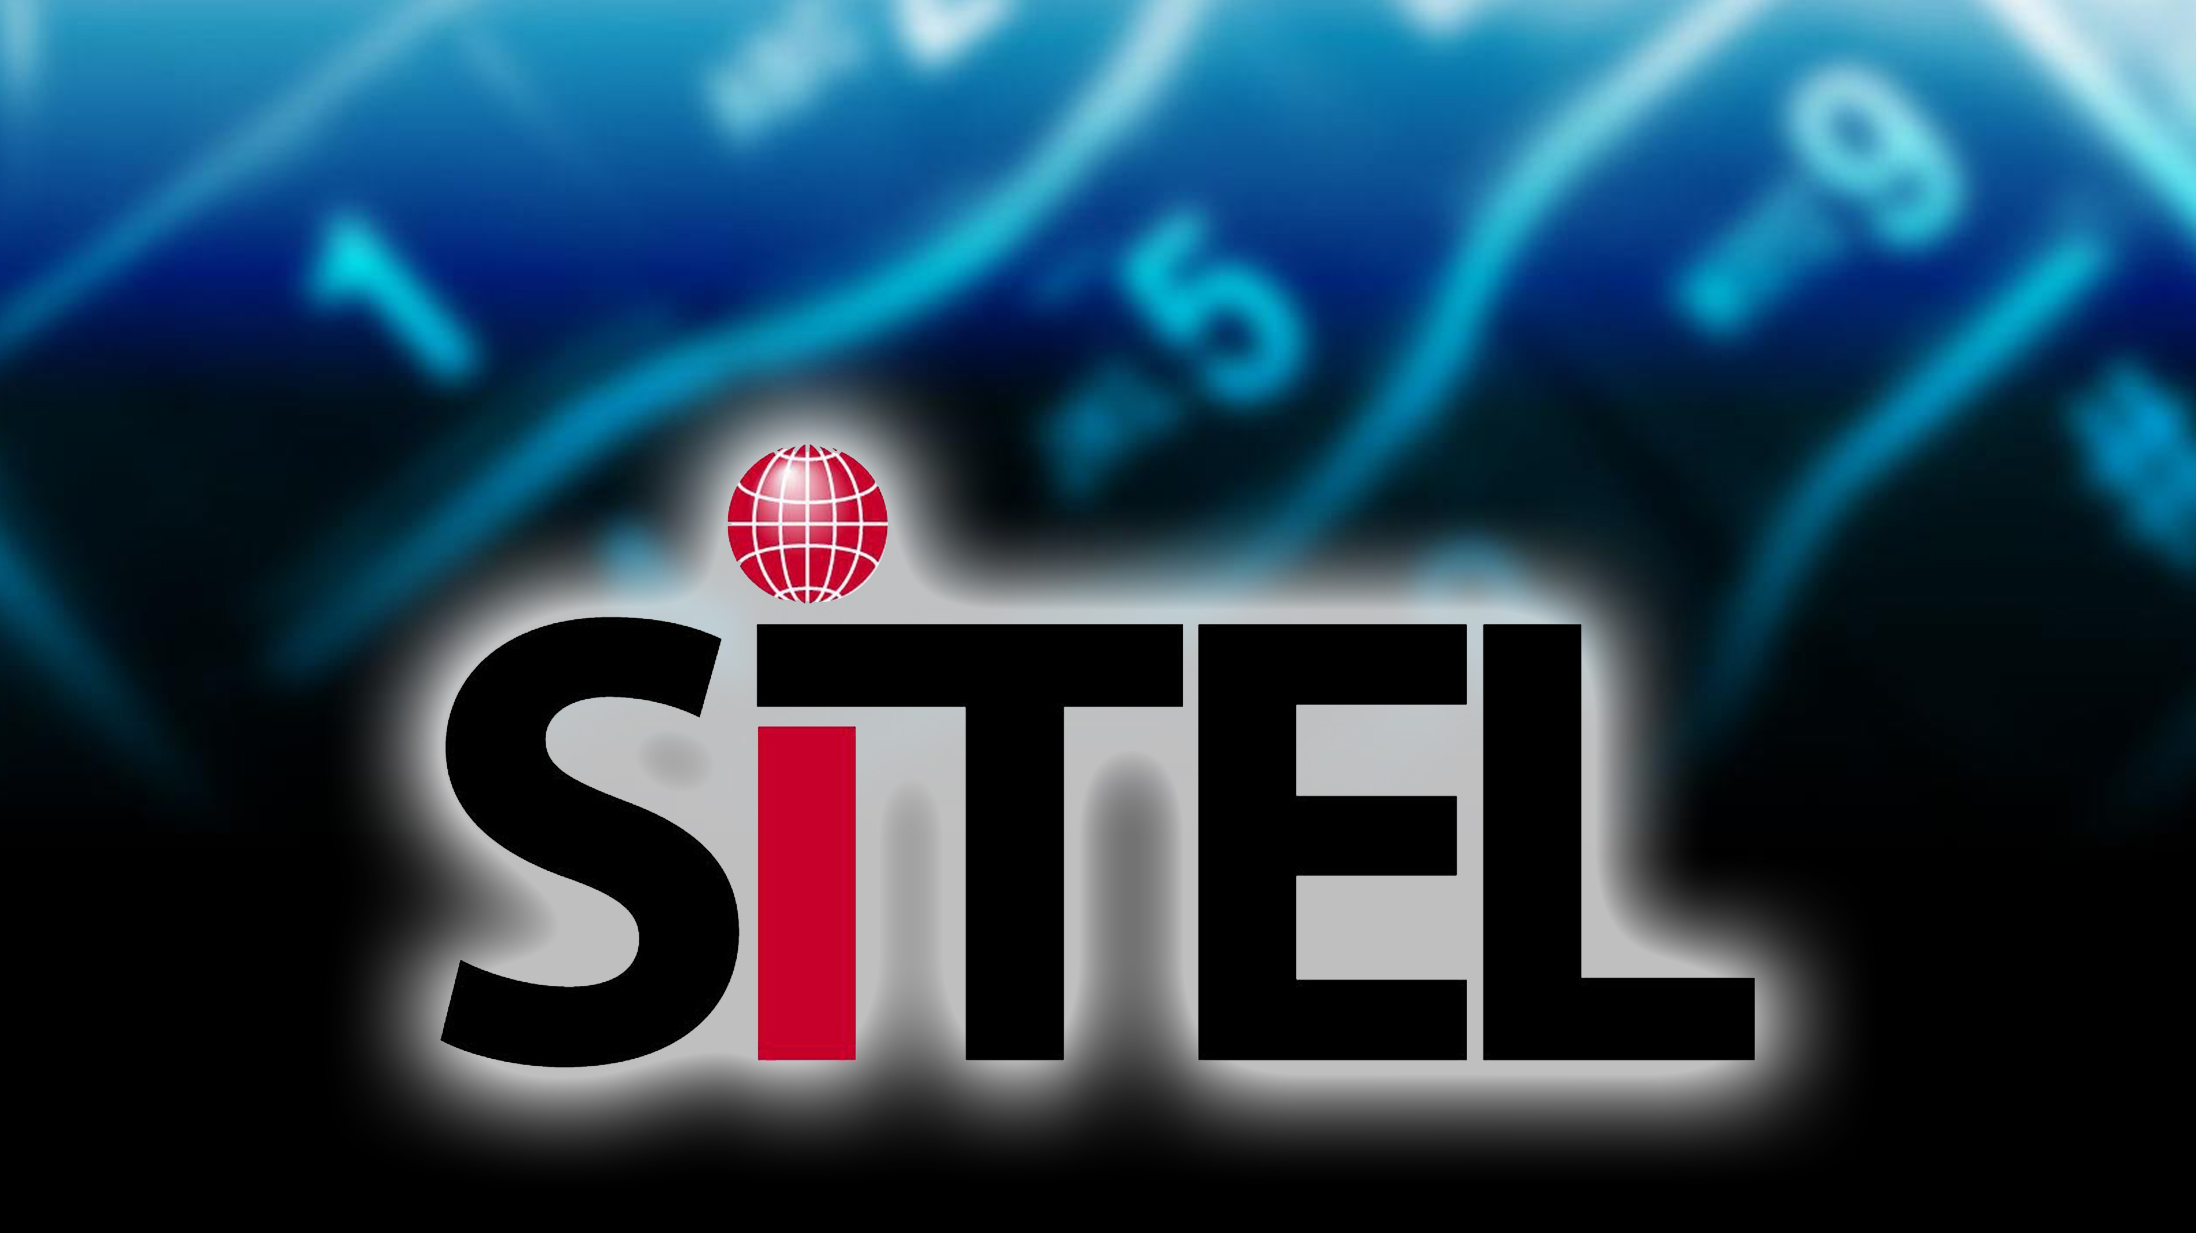 Sitel for web_1443023058146.jpg